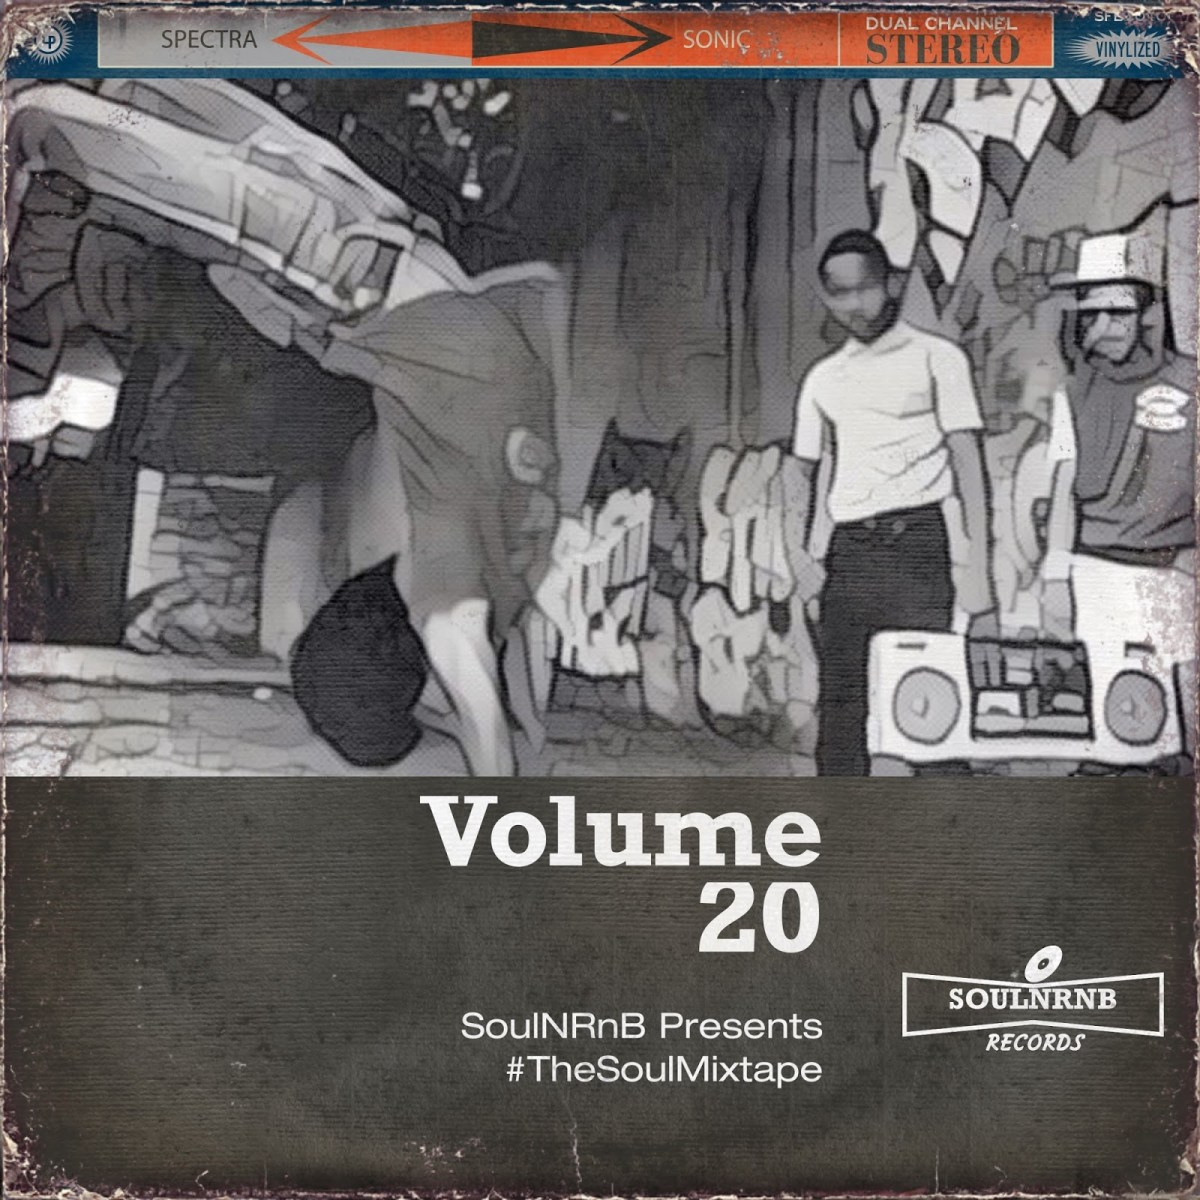 NUWAVERADIO PRESENTS #THESOULMIXTAPE NO.20